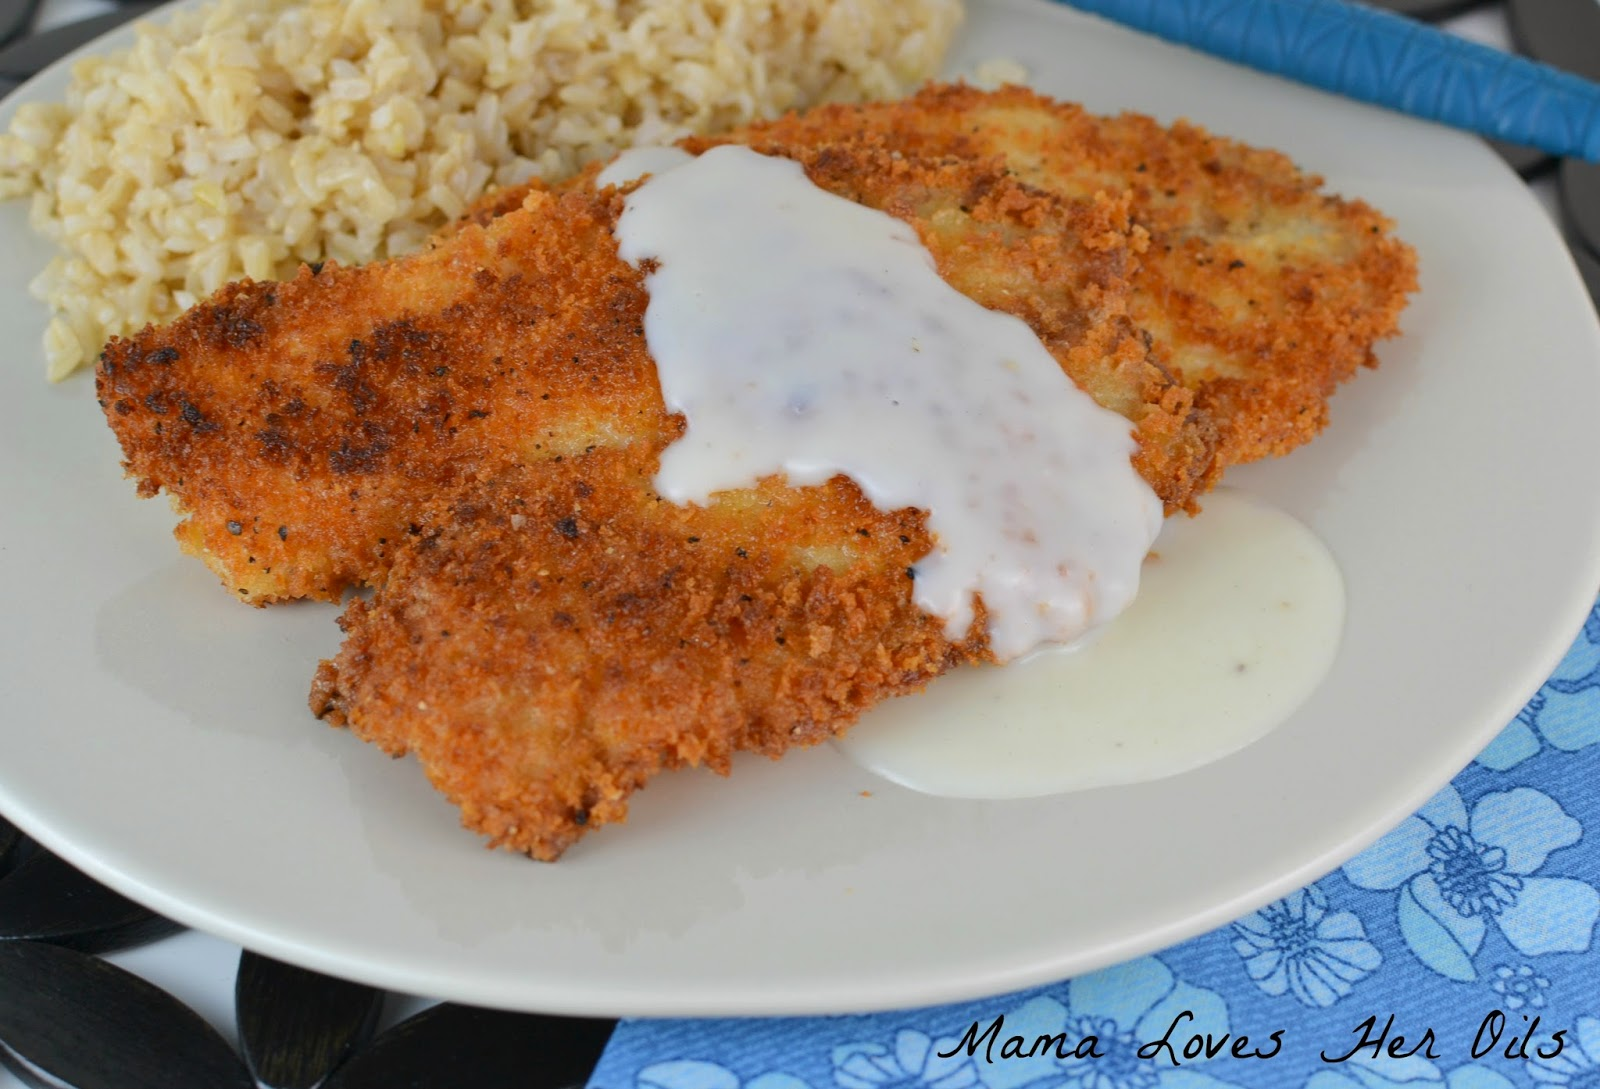 Perfectly fried tilapia with an amazing Young Living Lemon Essential Oil sauce! Great for weeknight dinners! Pan Fried Tilapia with Young Living Essential Oil Lemon Cream Sauce from Mama Loves Her Oils!